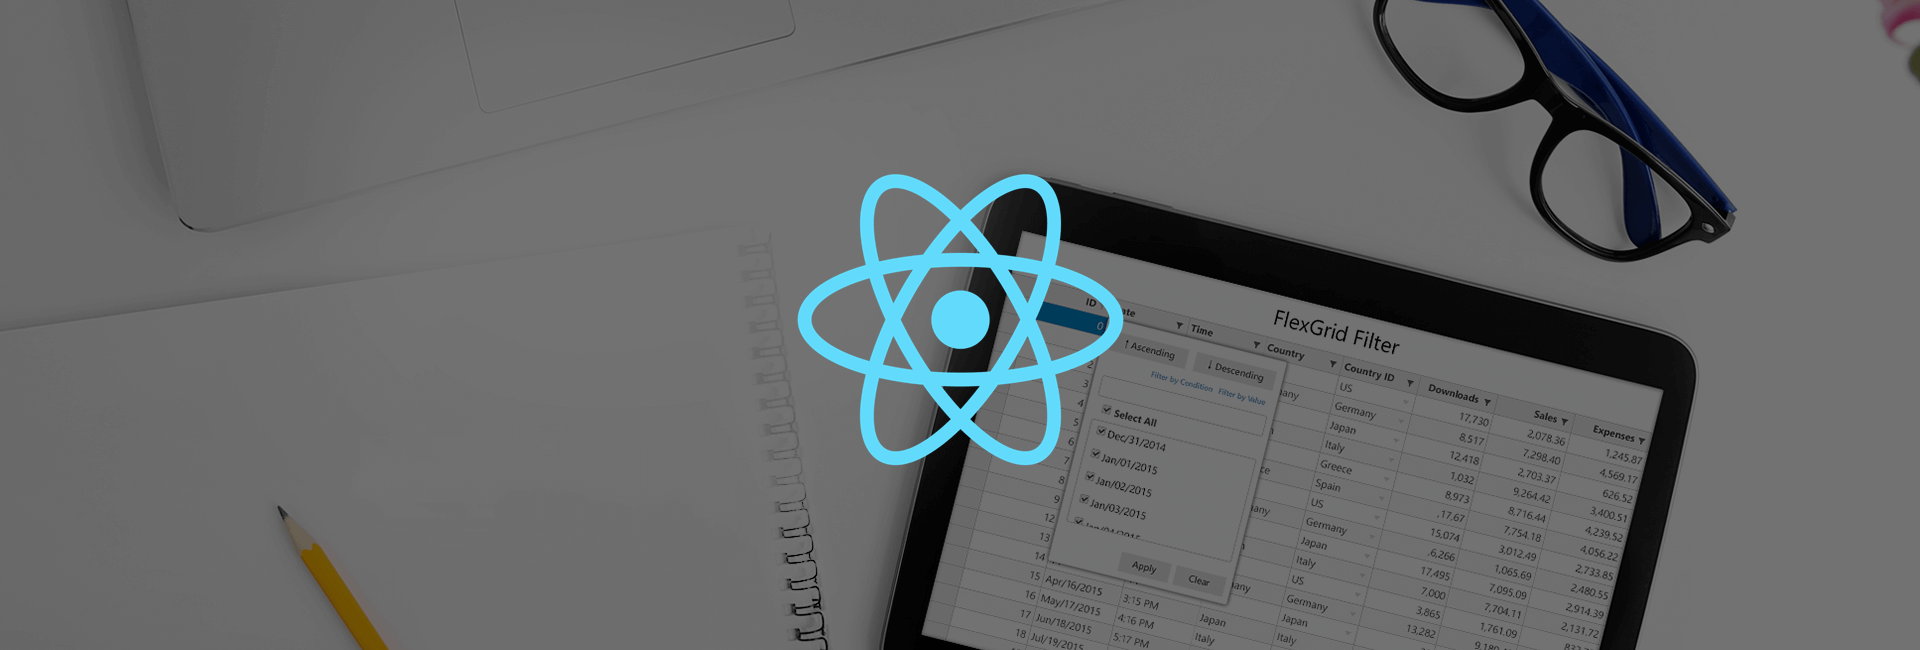 React Cell Templates for the FlexGrid